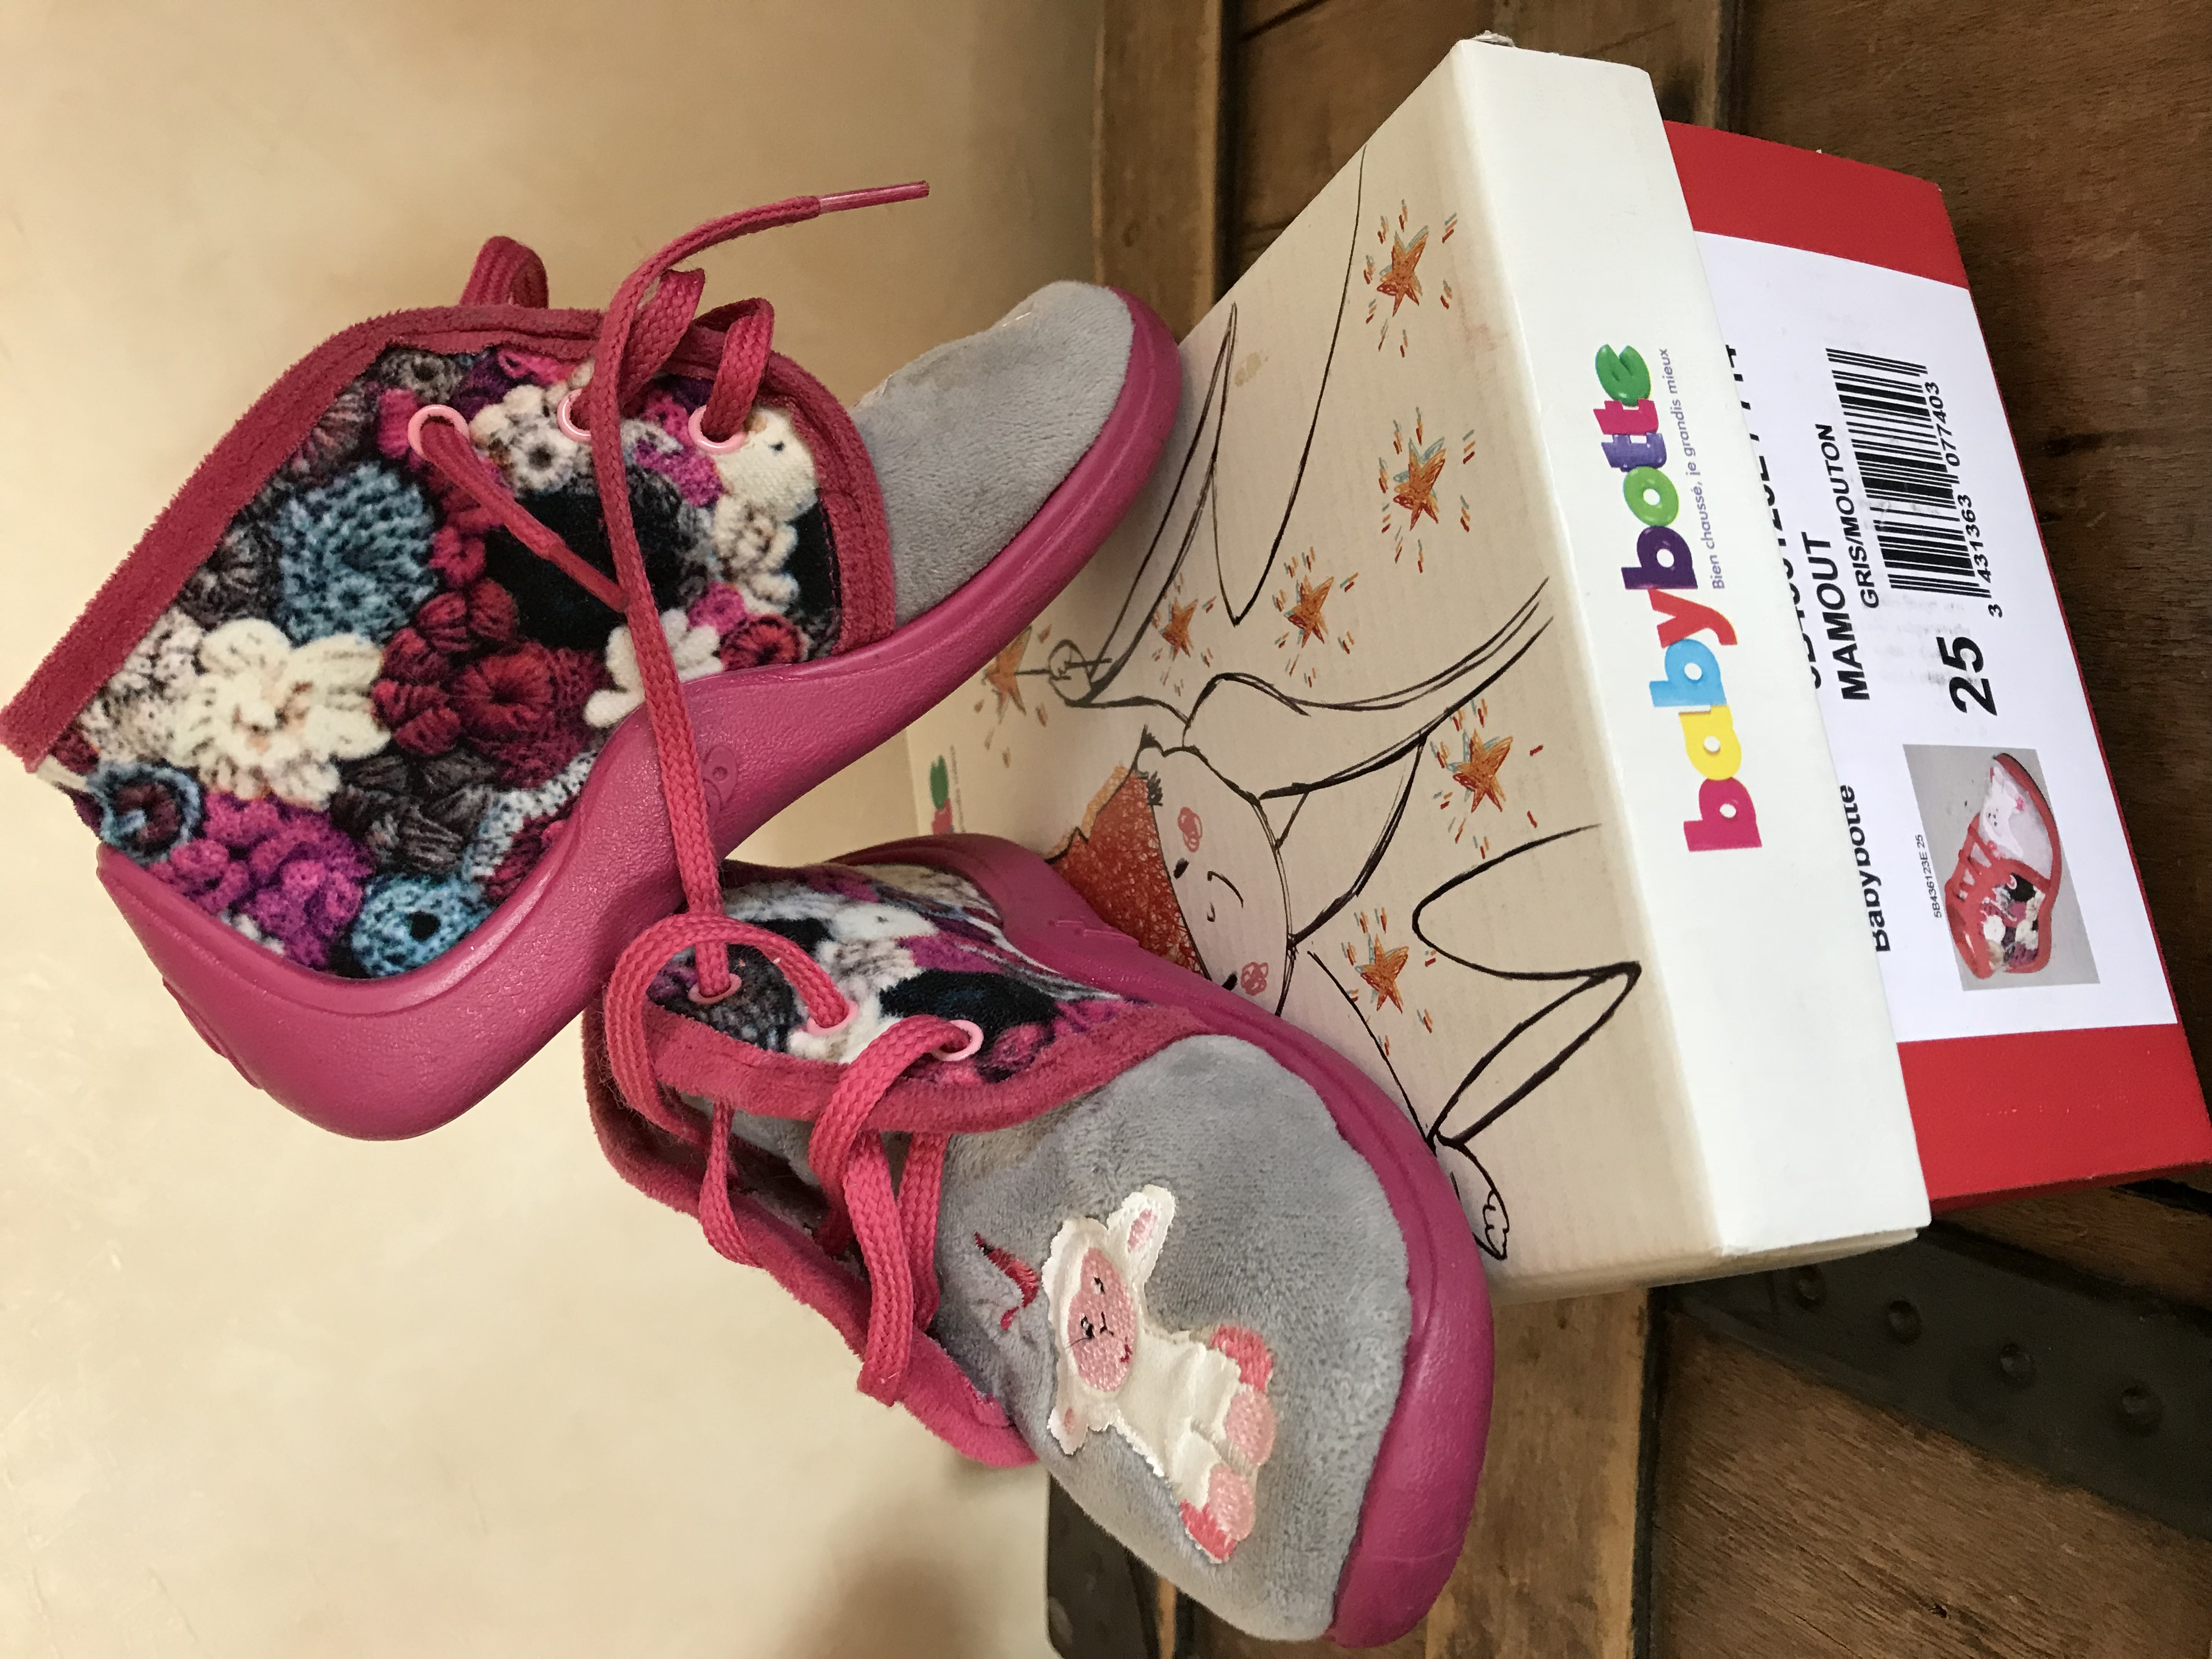 chaussons babybotte fille 25 10 Angy (60)